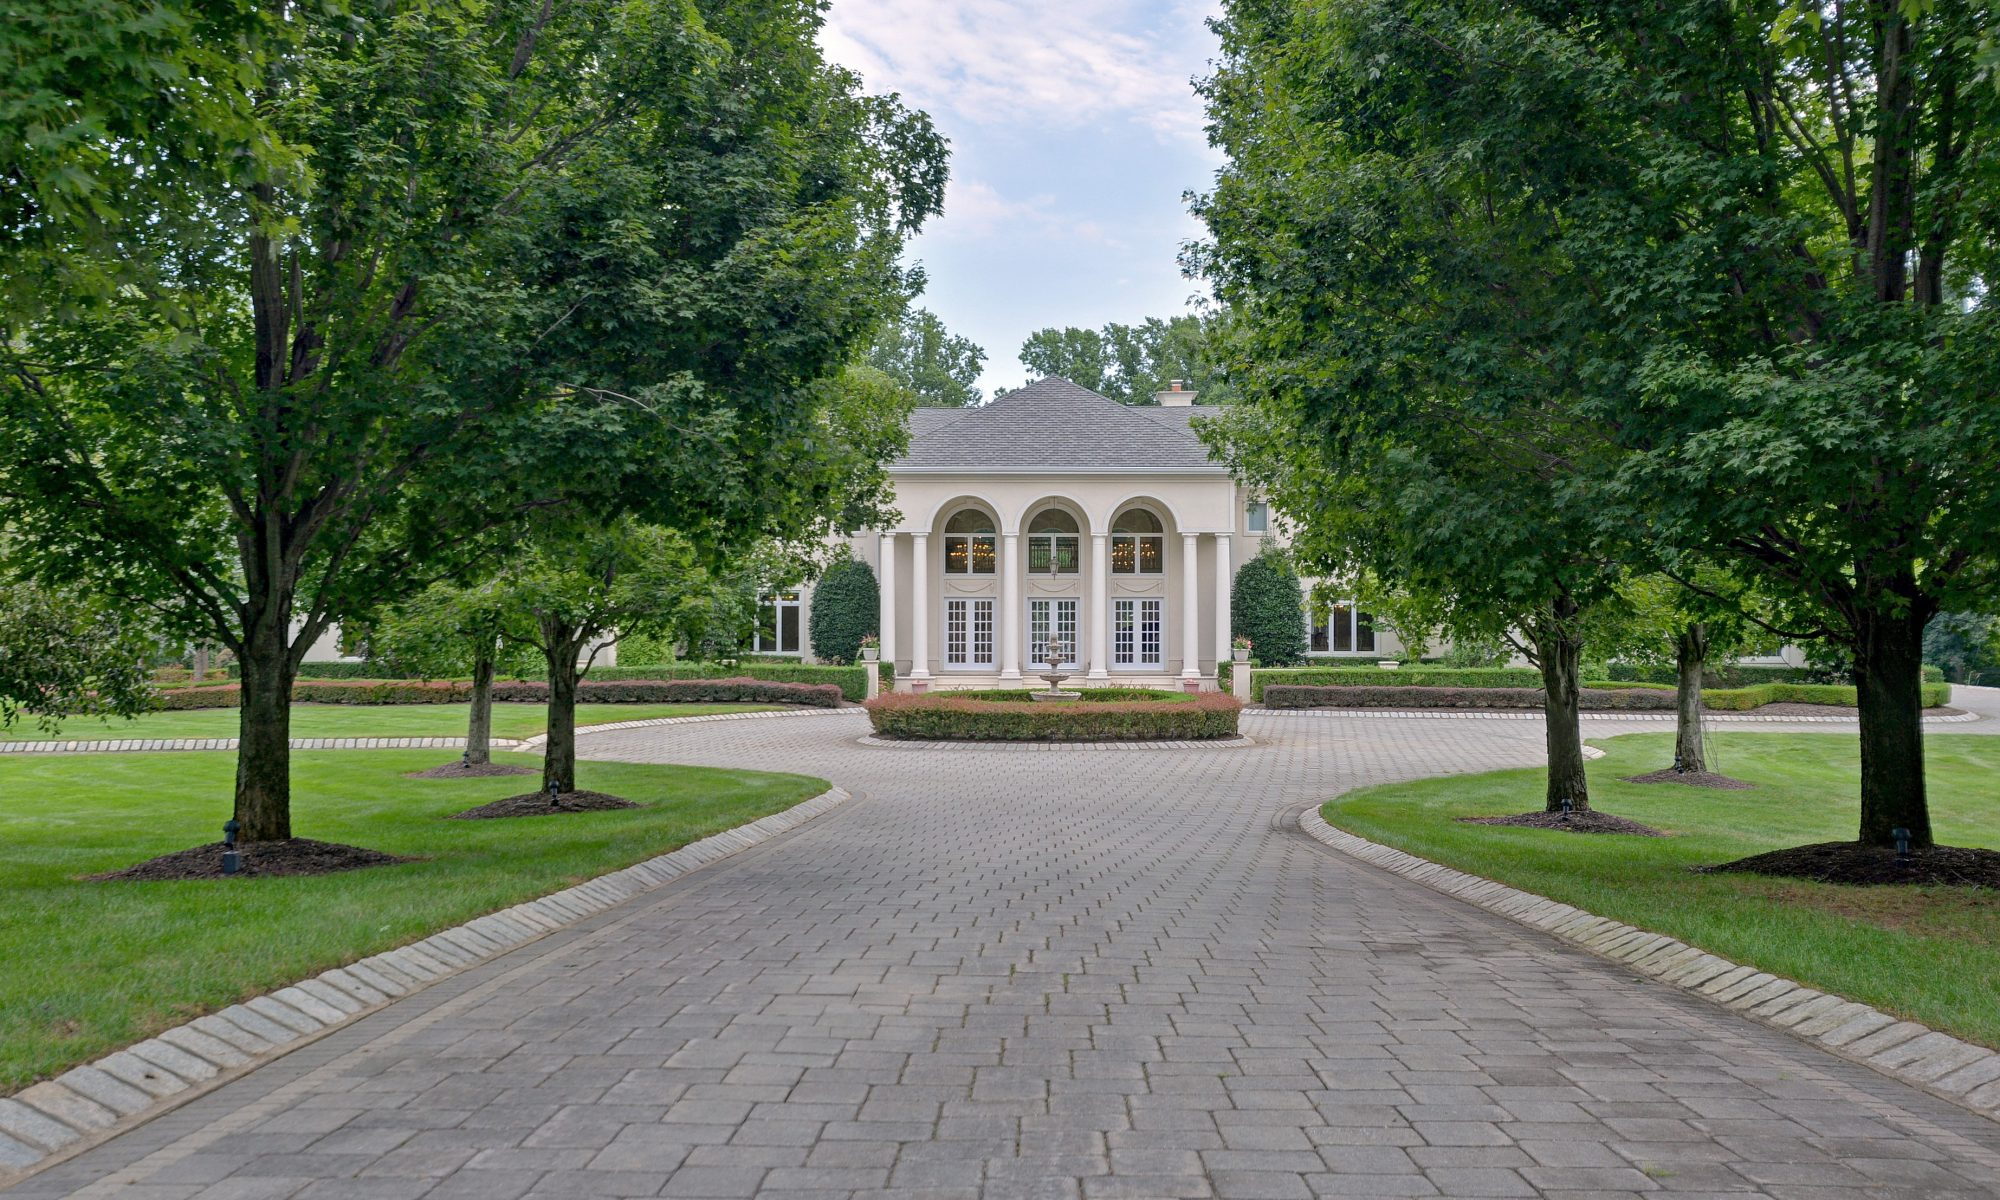 Central Jersey Homes for Sale, Luxury Homes for Sale, Estate Homes for Sale